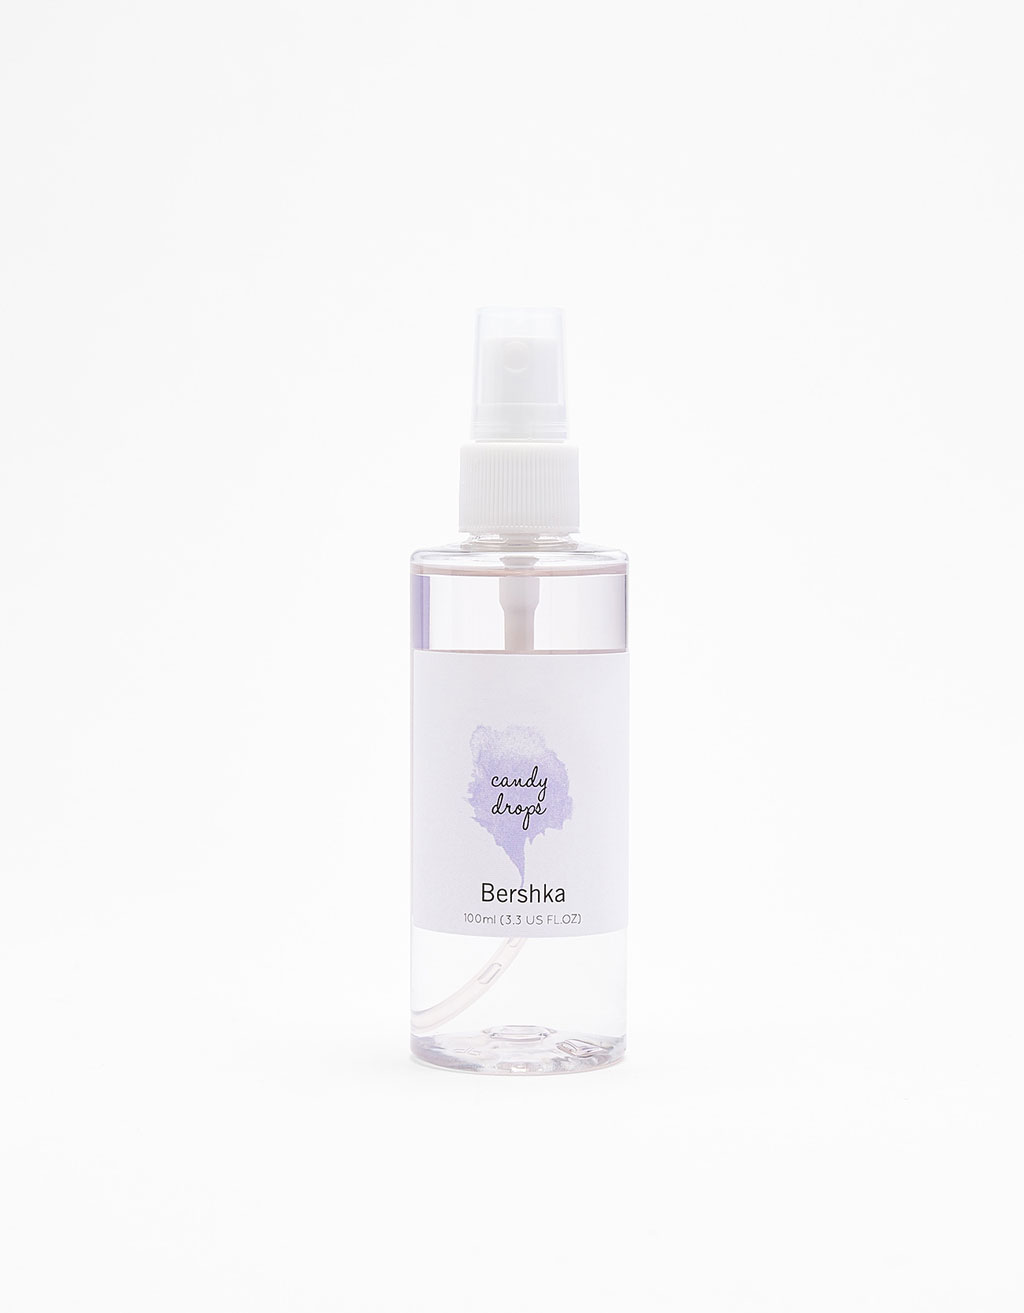 Bershka Body Mist 'Candy Drops' 100ml